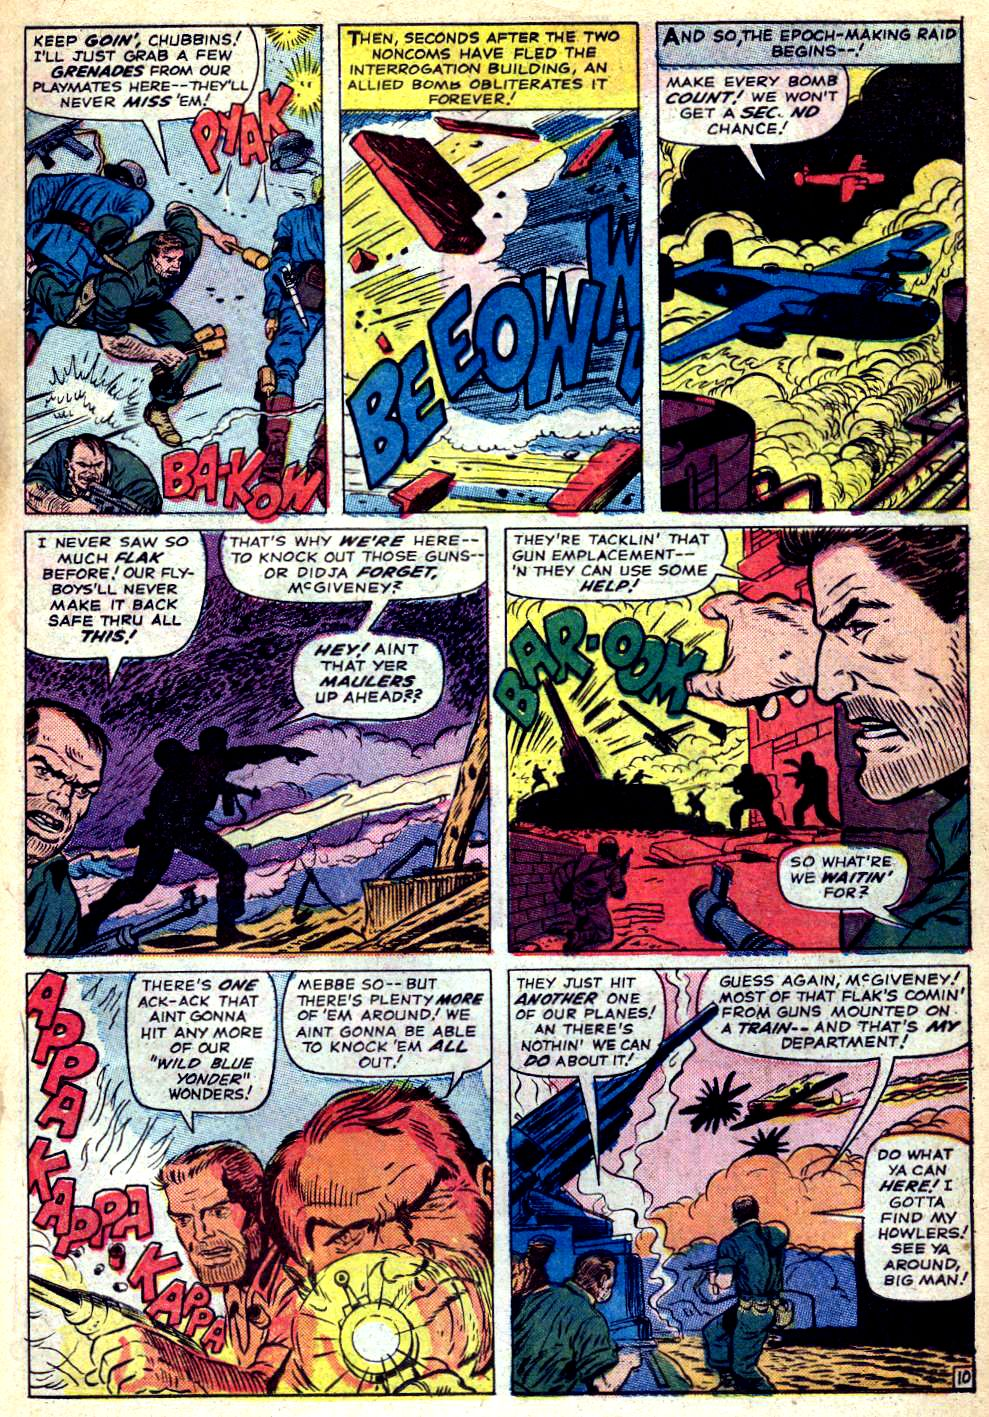 Read online Sgt. Fury comic -  Issue #22 - 15